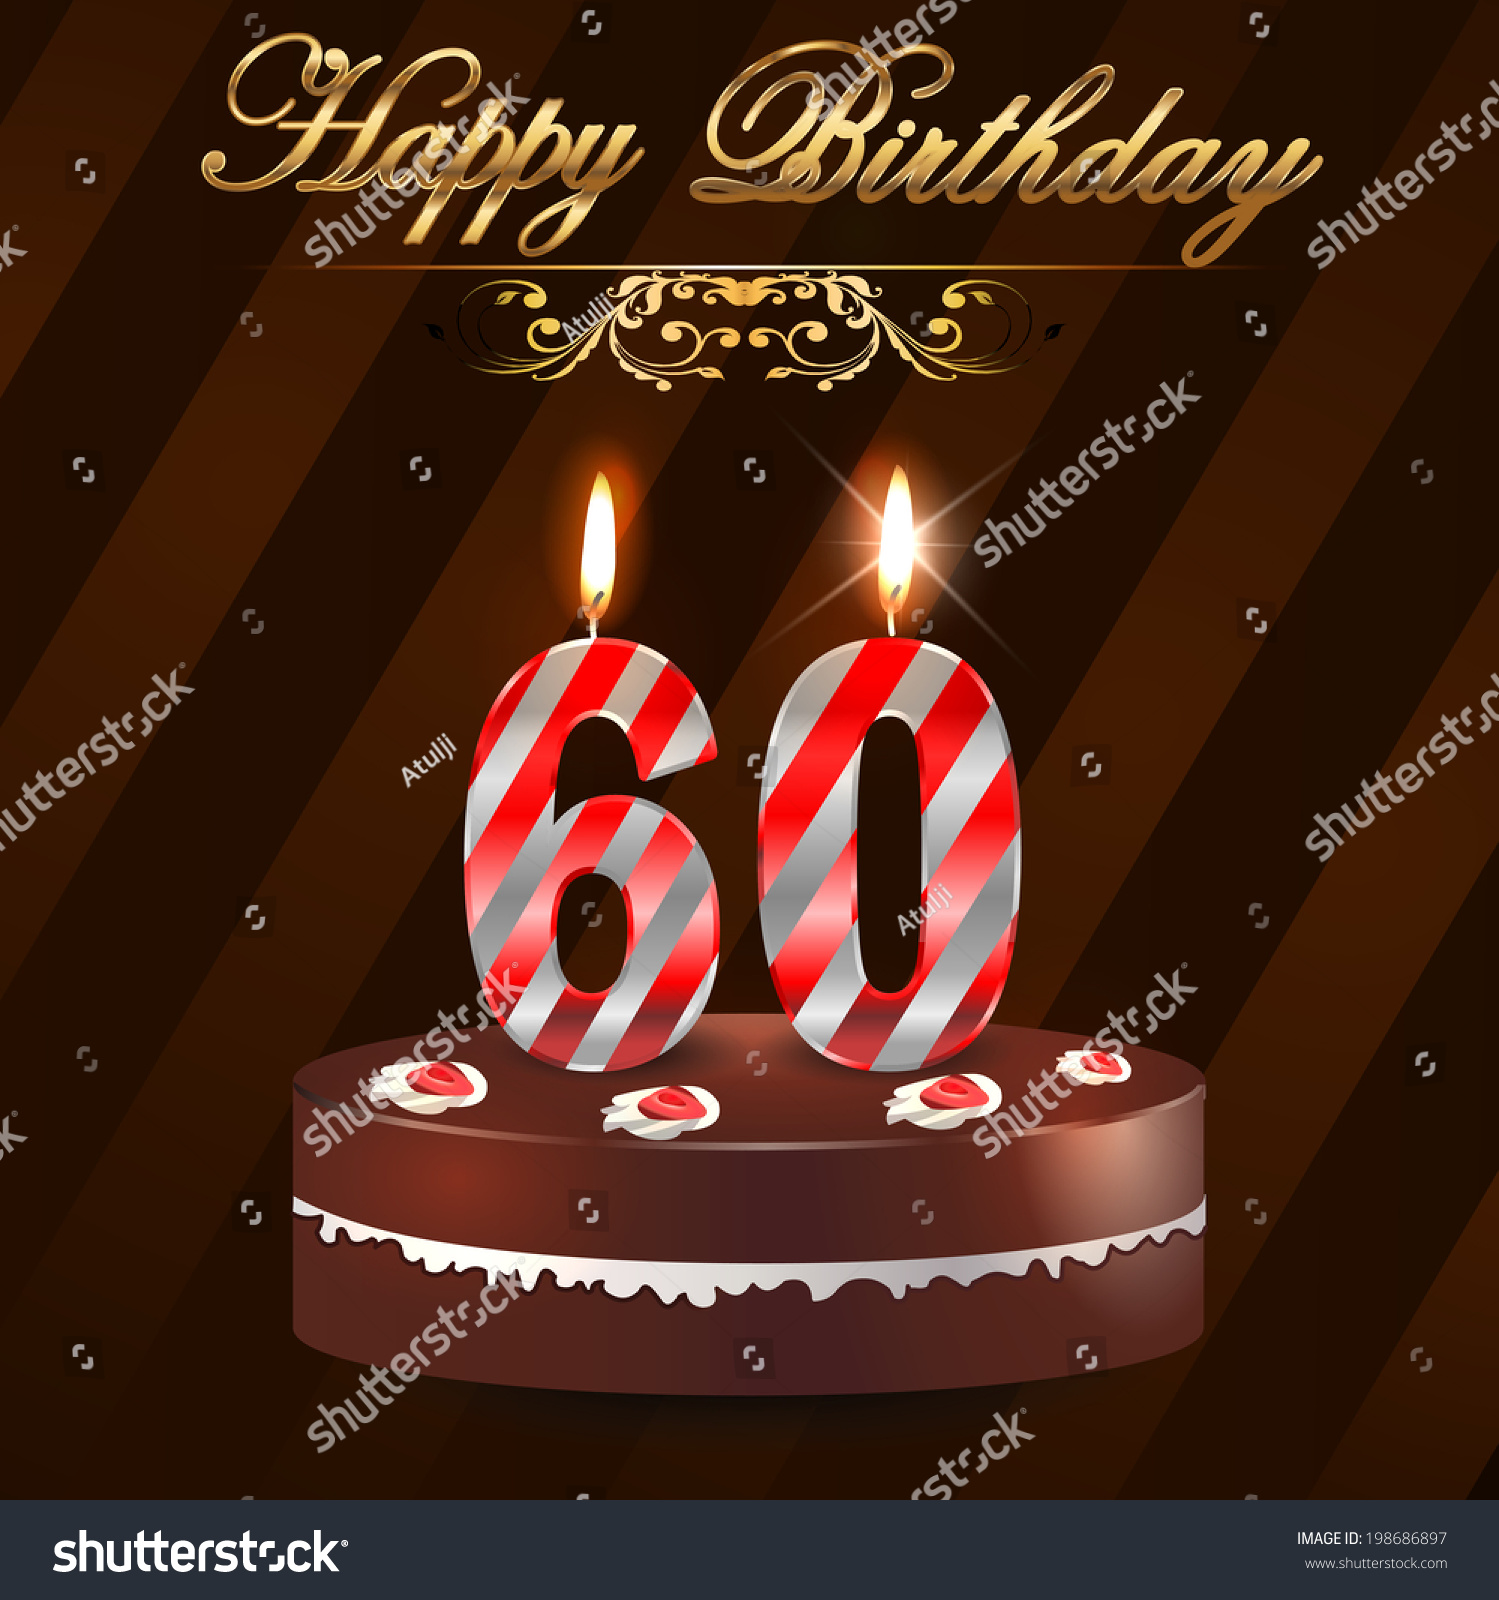 60 Year Happy Birthday Card With Cake Stock Photo 198686897